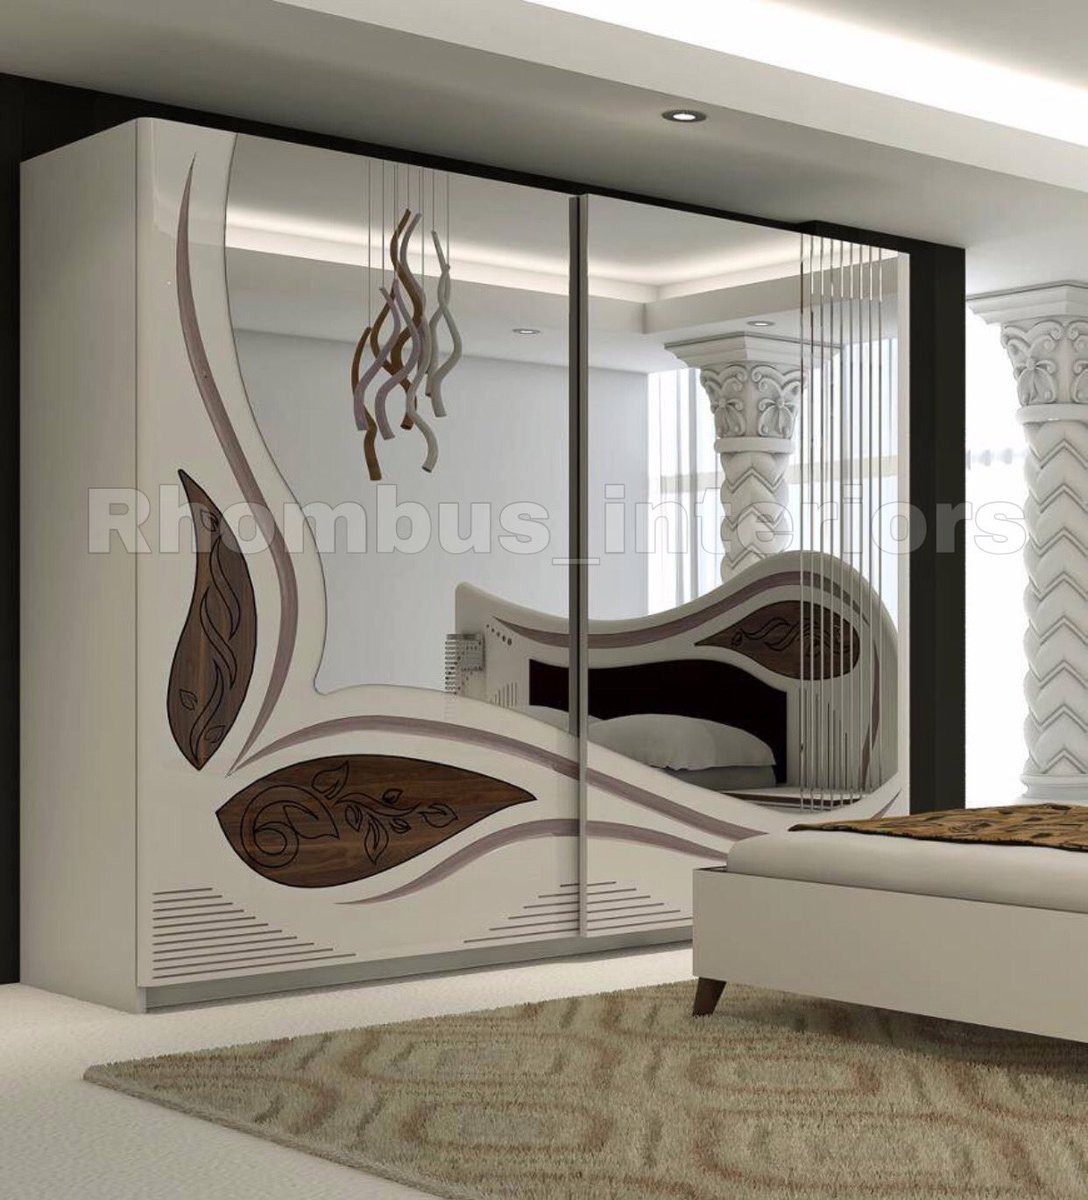 #rhombus_interiors Details are not details; they make the product. #interior #interiordesignpic.twitter.com/Caz0QDY31U